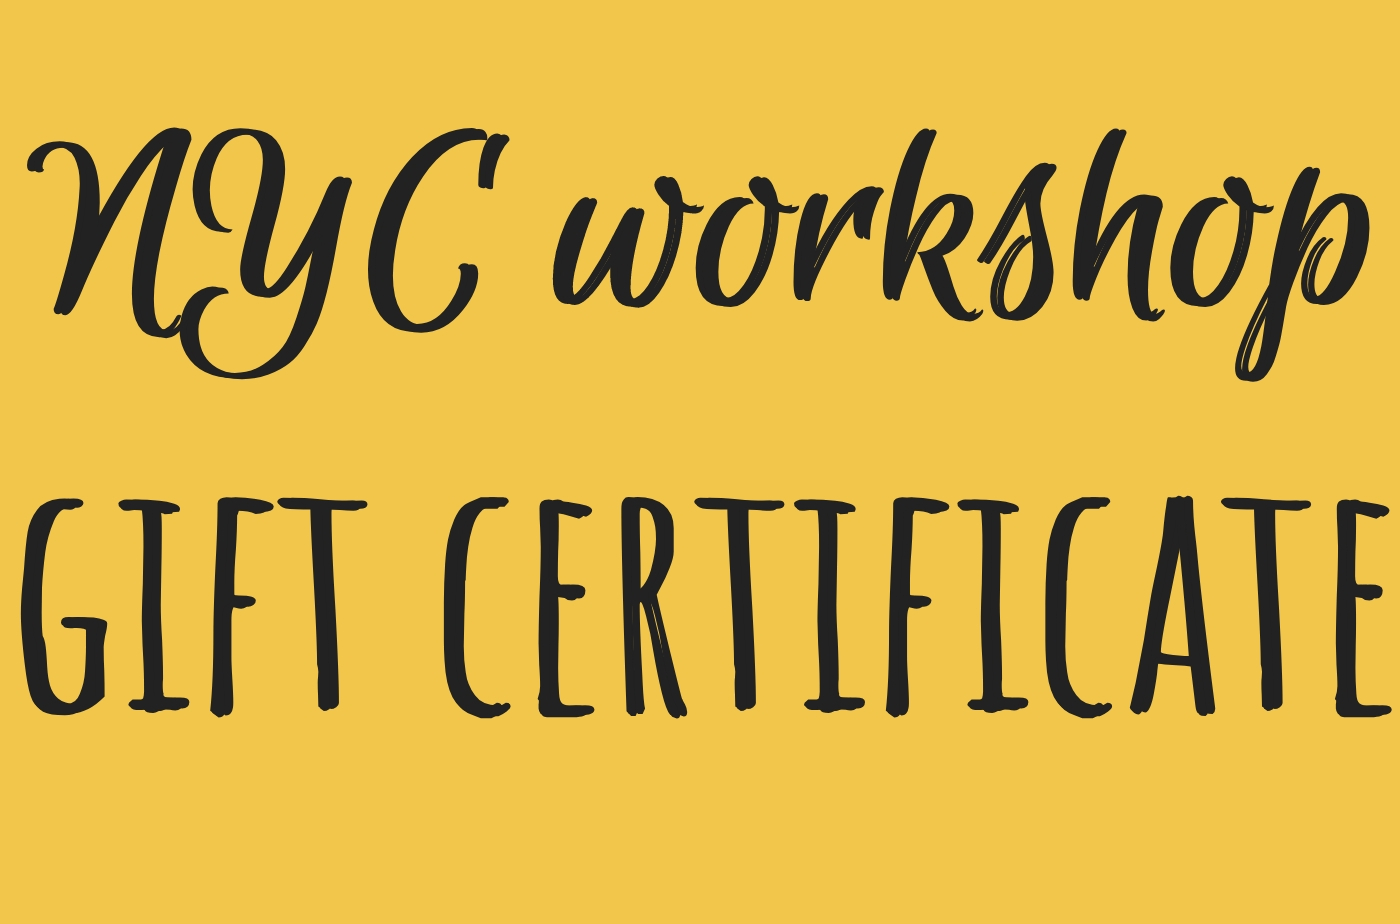 Catapult  classes: Catapult Classes, NYC Workshop Gift Certificate, Open-Genre, Workshop